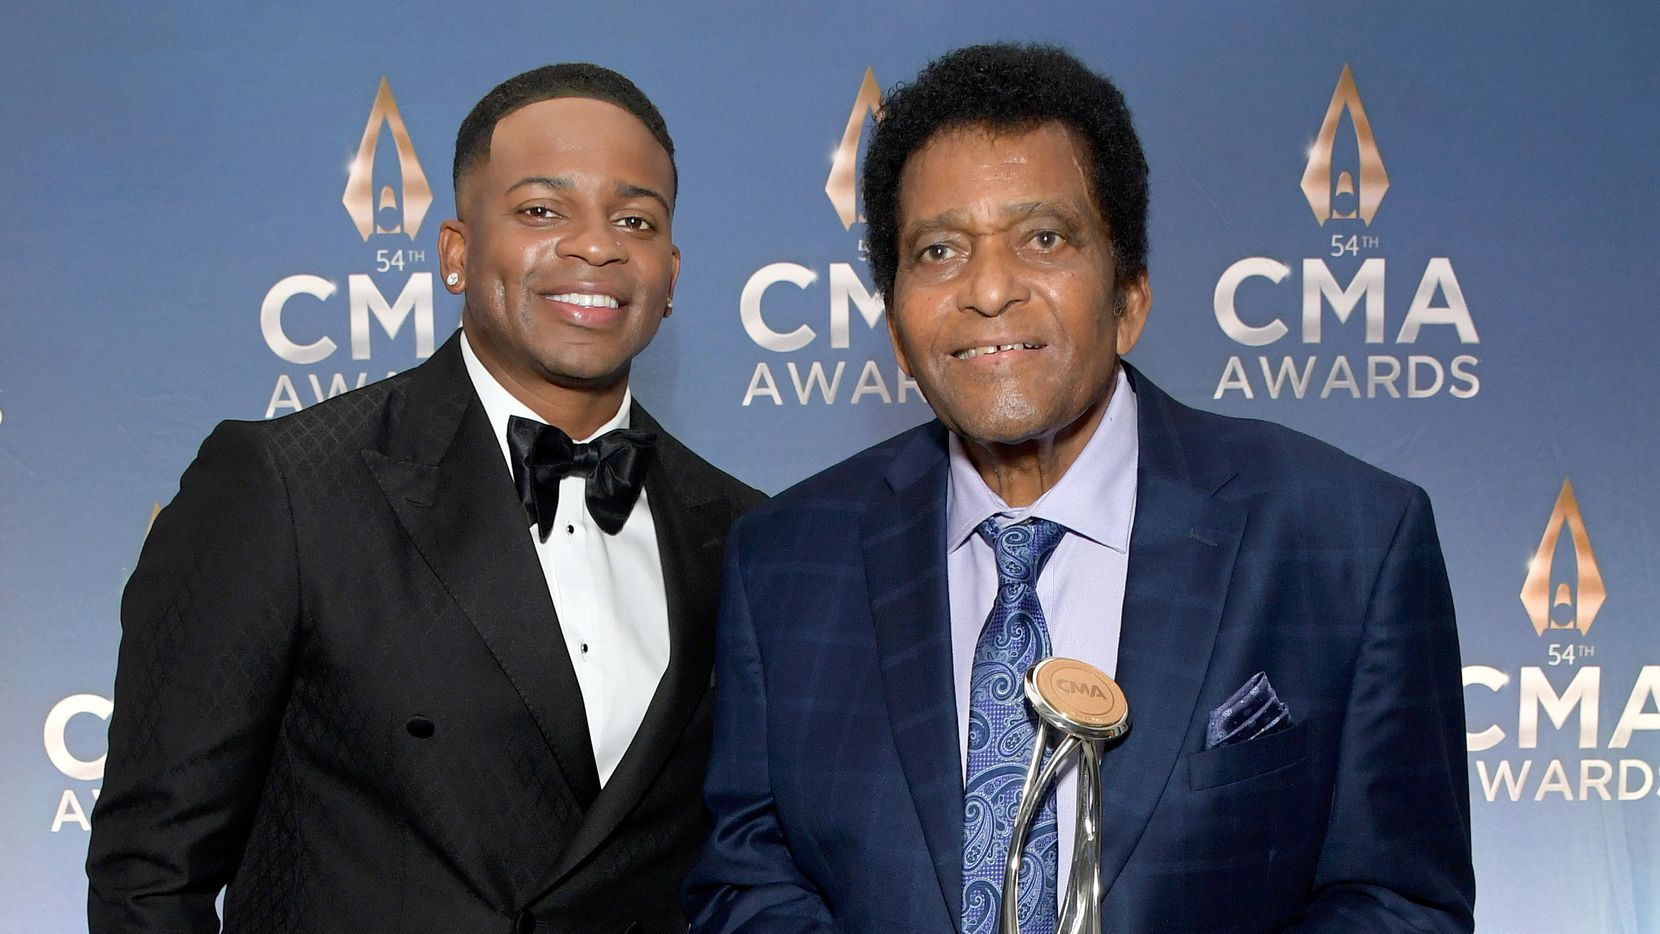 "Charley Pride (right) holds his lifetime achievement award alongside country singer Jimmie Allen at the 54th annual CMA Awards at the Music City Center on Nov. 11, 2020 in Nashville, Tenn. In a perfomance onstage during the awards, Pride, the recipient of this year's Willie Nelson lifetime achievement award at the CMAs, joined Allen onstage, where the pair sang ""Kiss An Angel Good Mornin'"" as other star entertainers sang along in the audience."